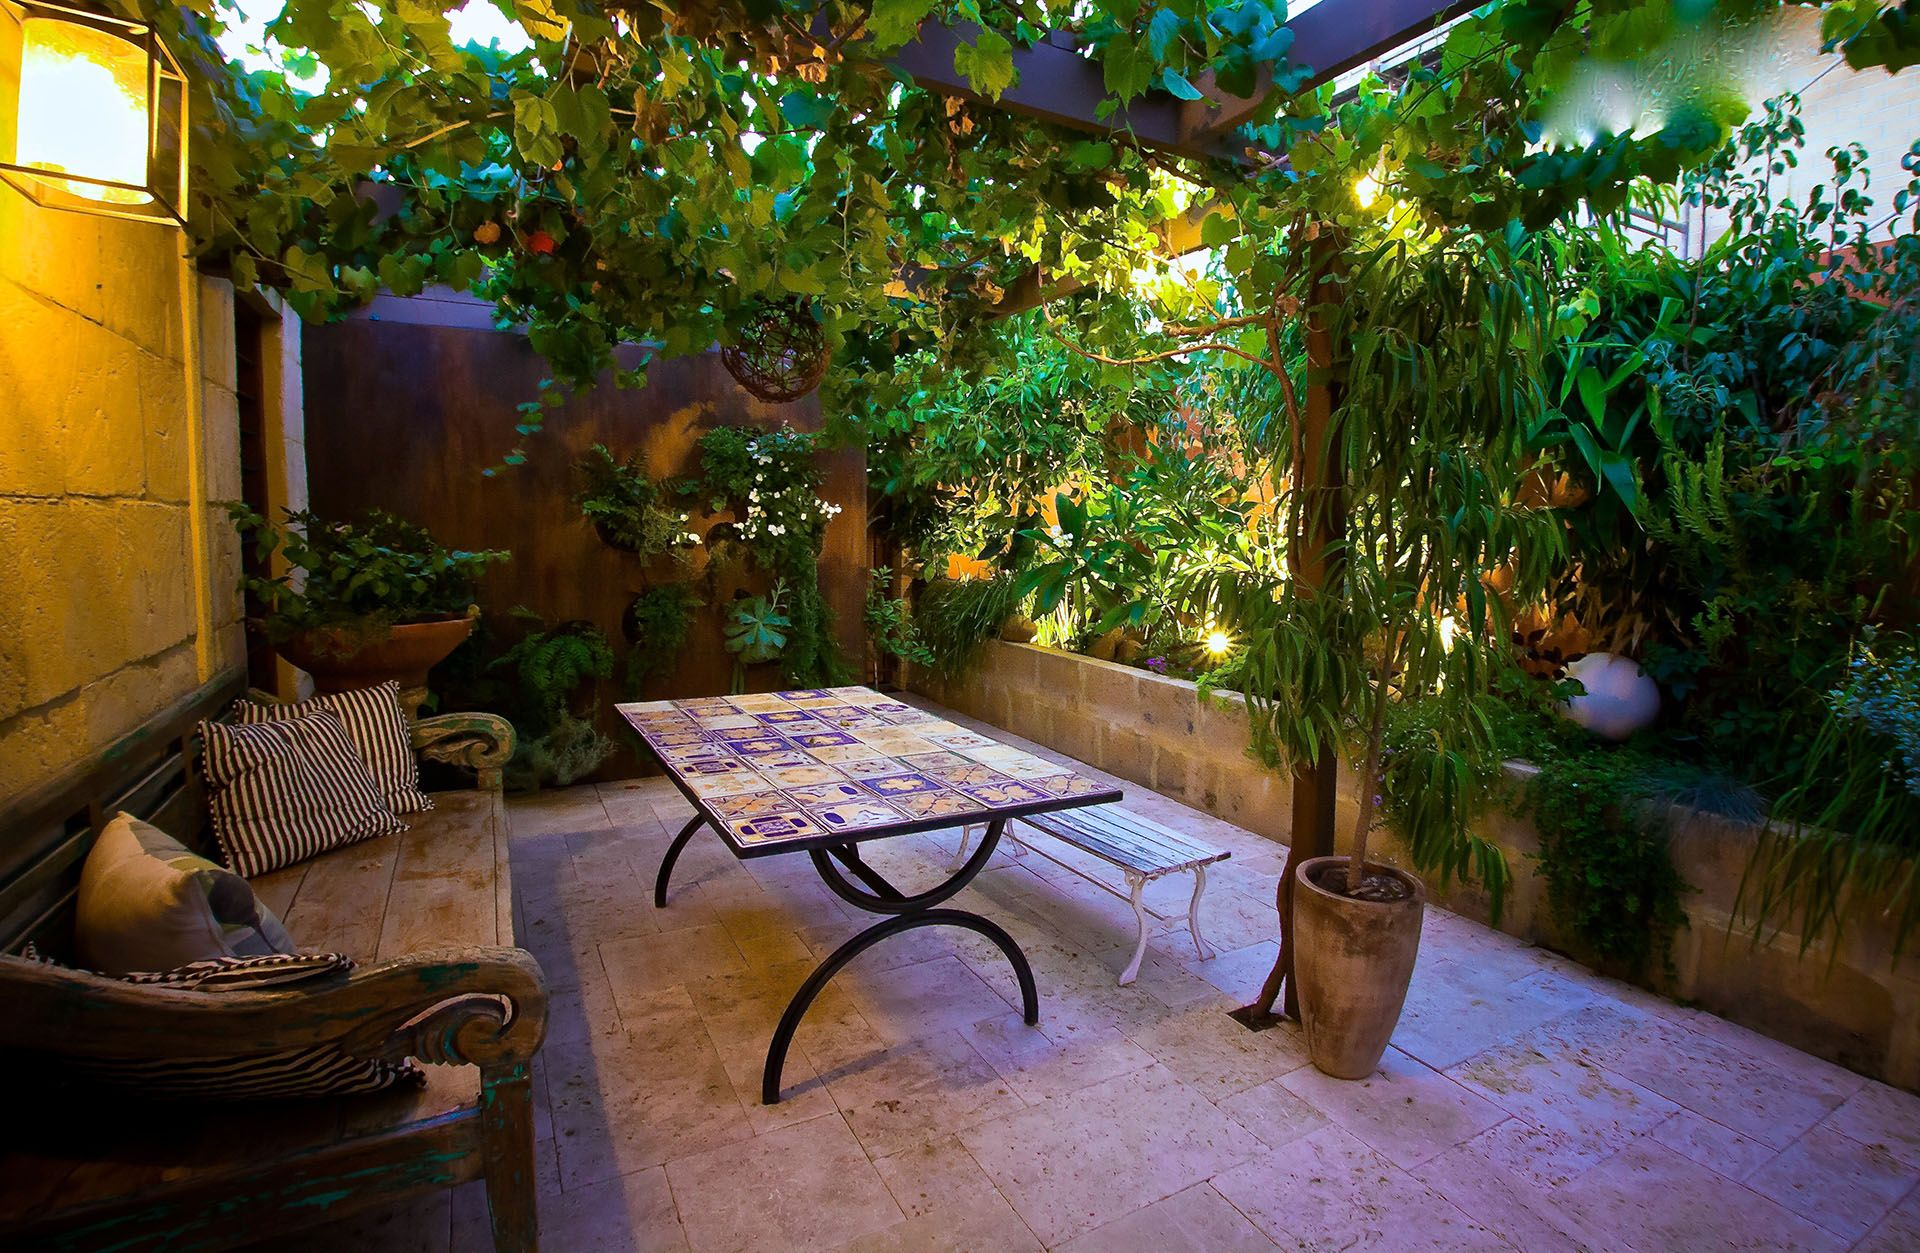 Exterior courtyard renovation mediterranean garden design for Garden design ideas by the sea